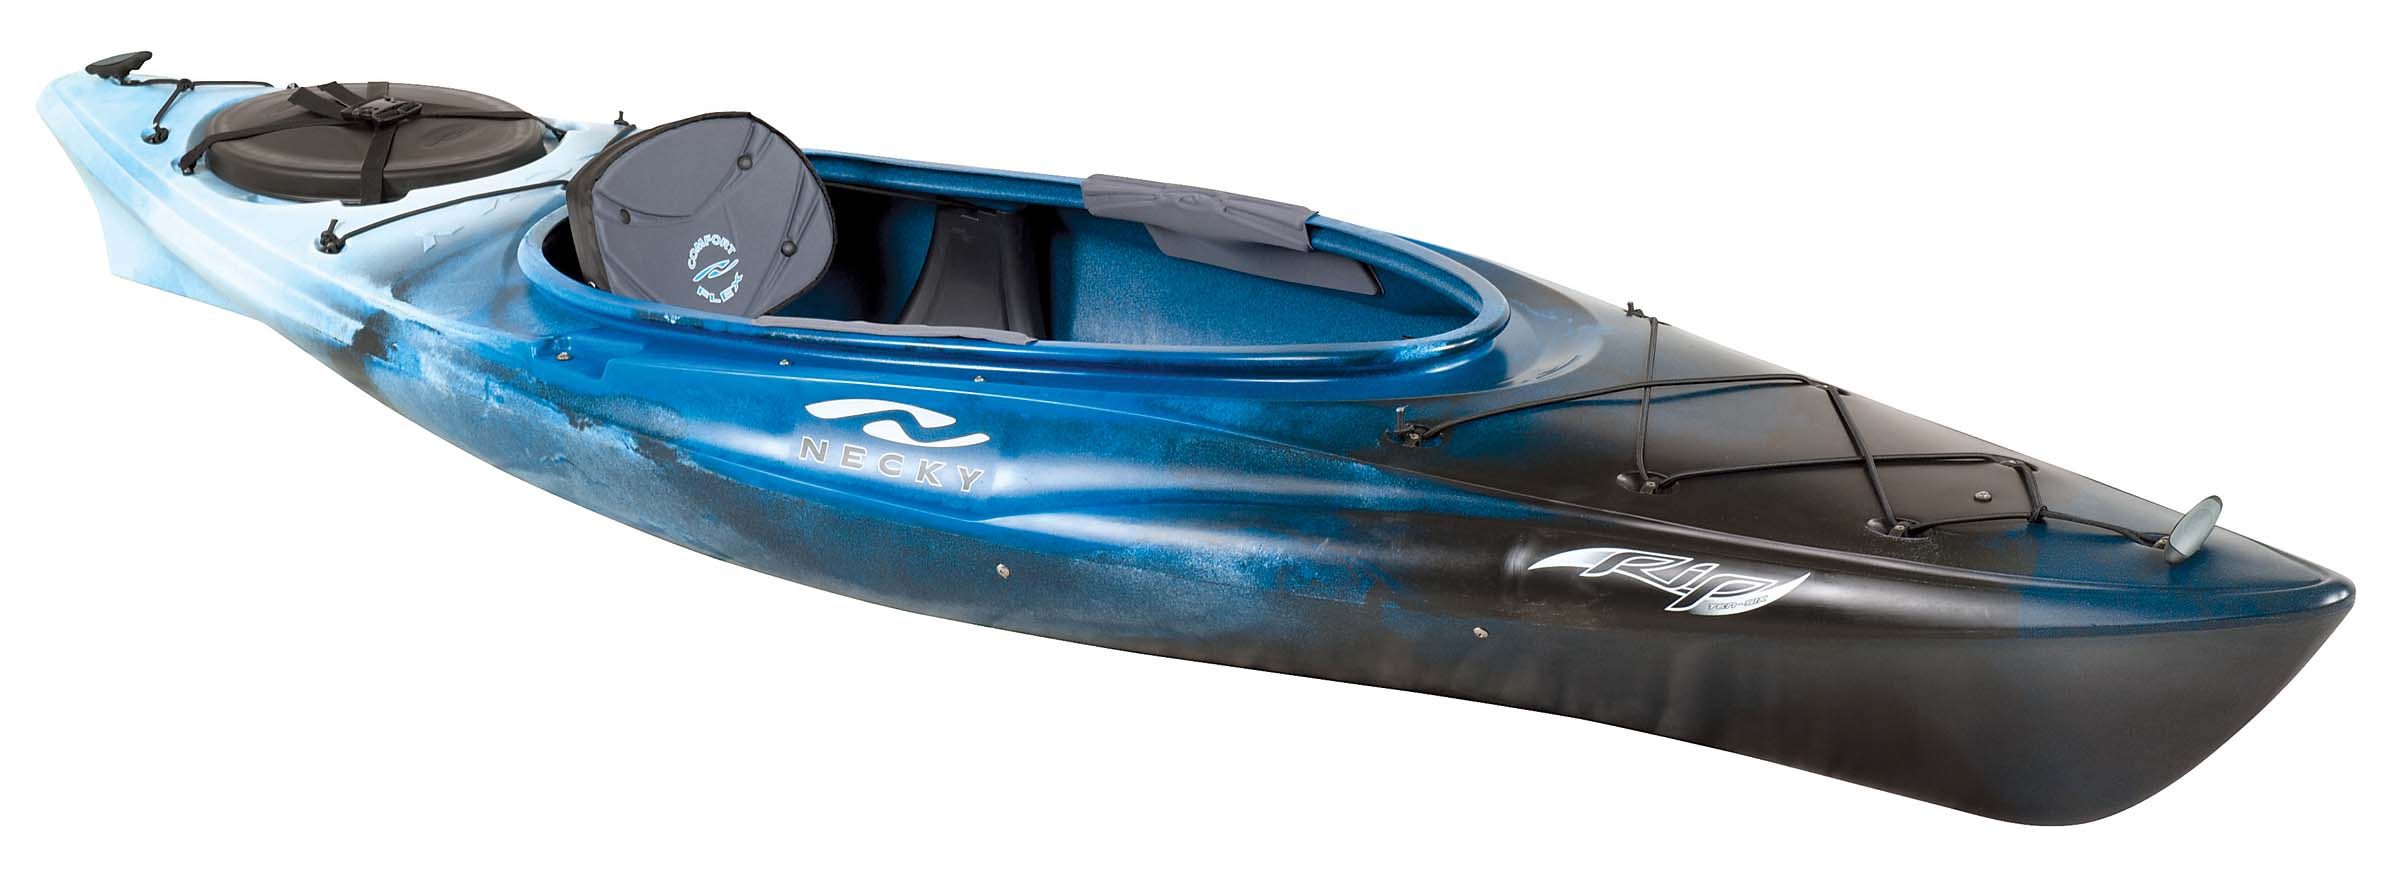 What Happened To Necky Kayaks